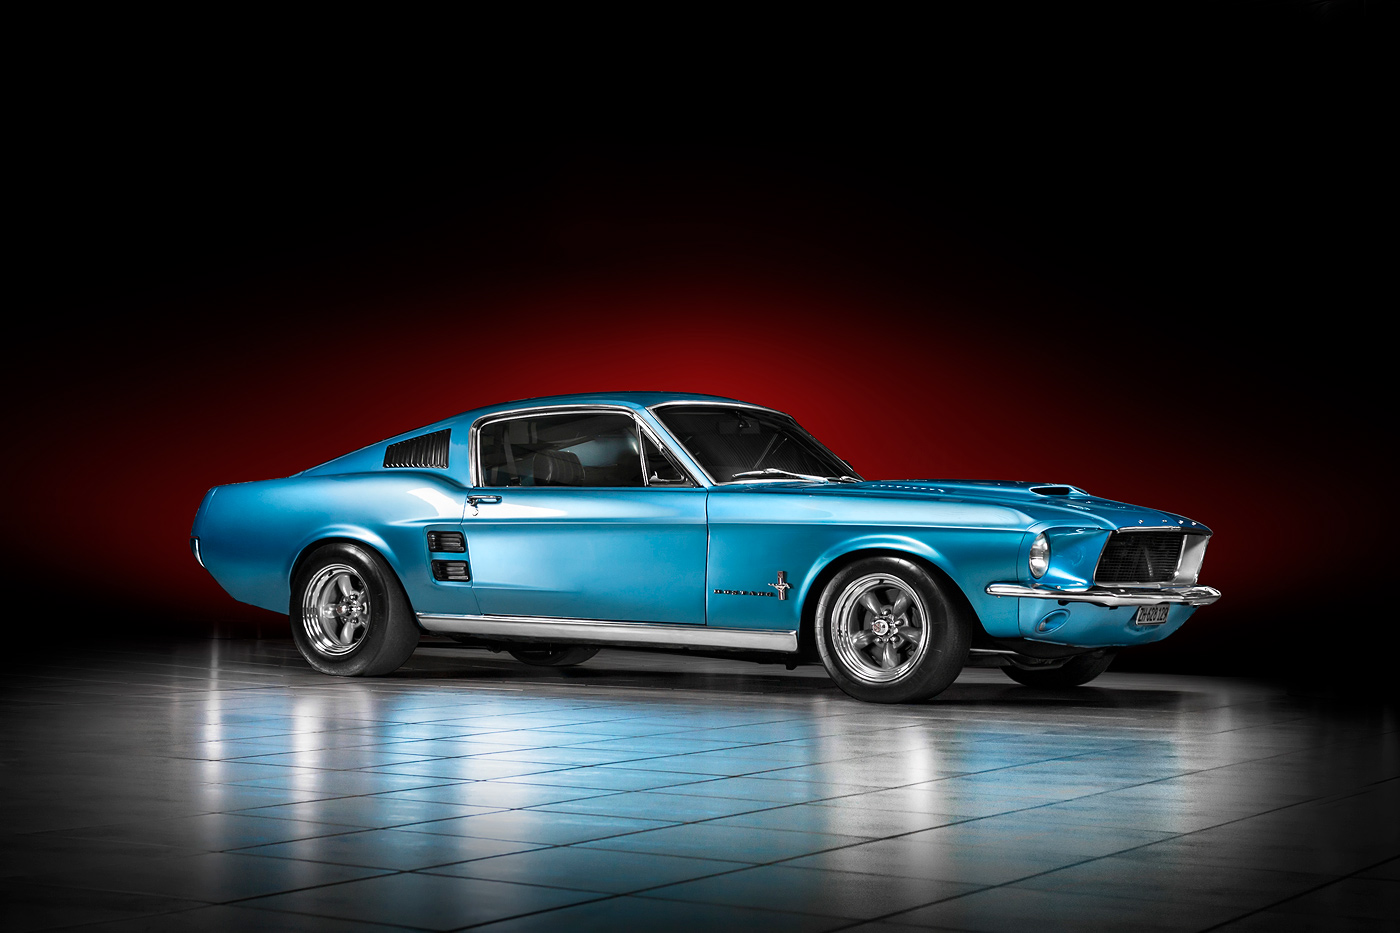 http://gerlingracing.com/wp-content/uploads/2015/01/projects-67-Ford-mustang-fastback-1967_02.jpg